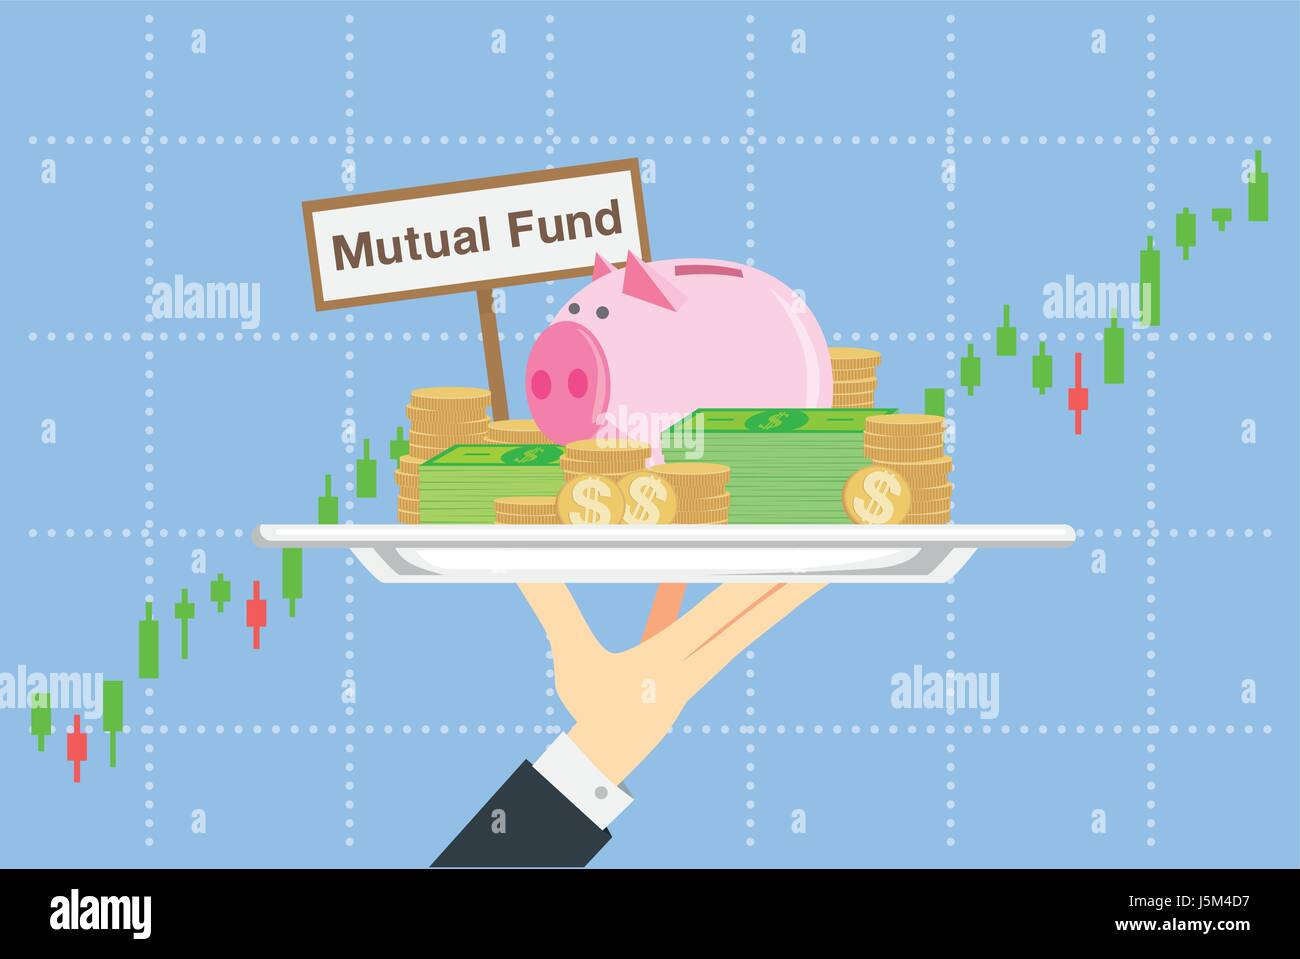 Illustration about saving in mutual funds in catering concept. - Stock Image